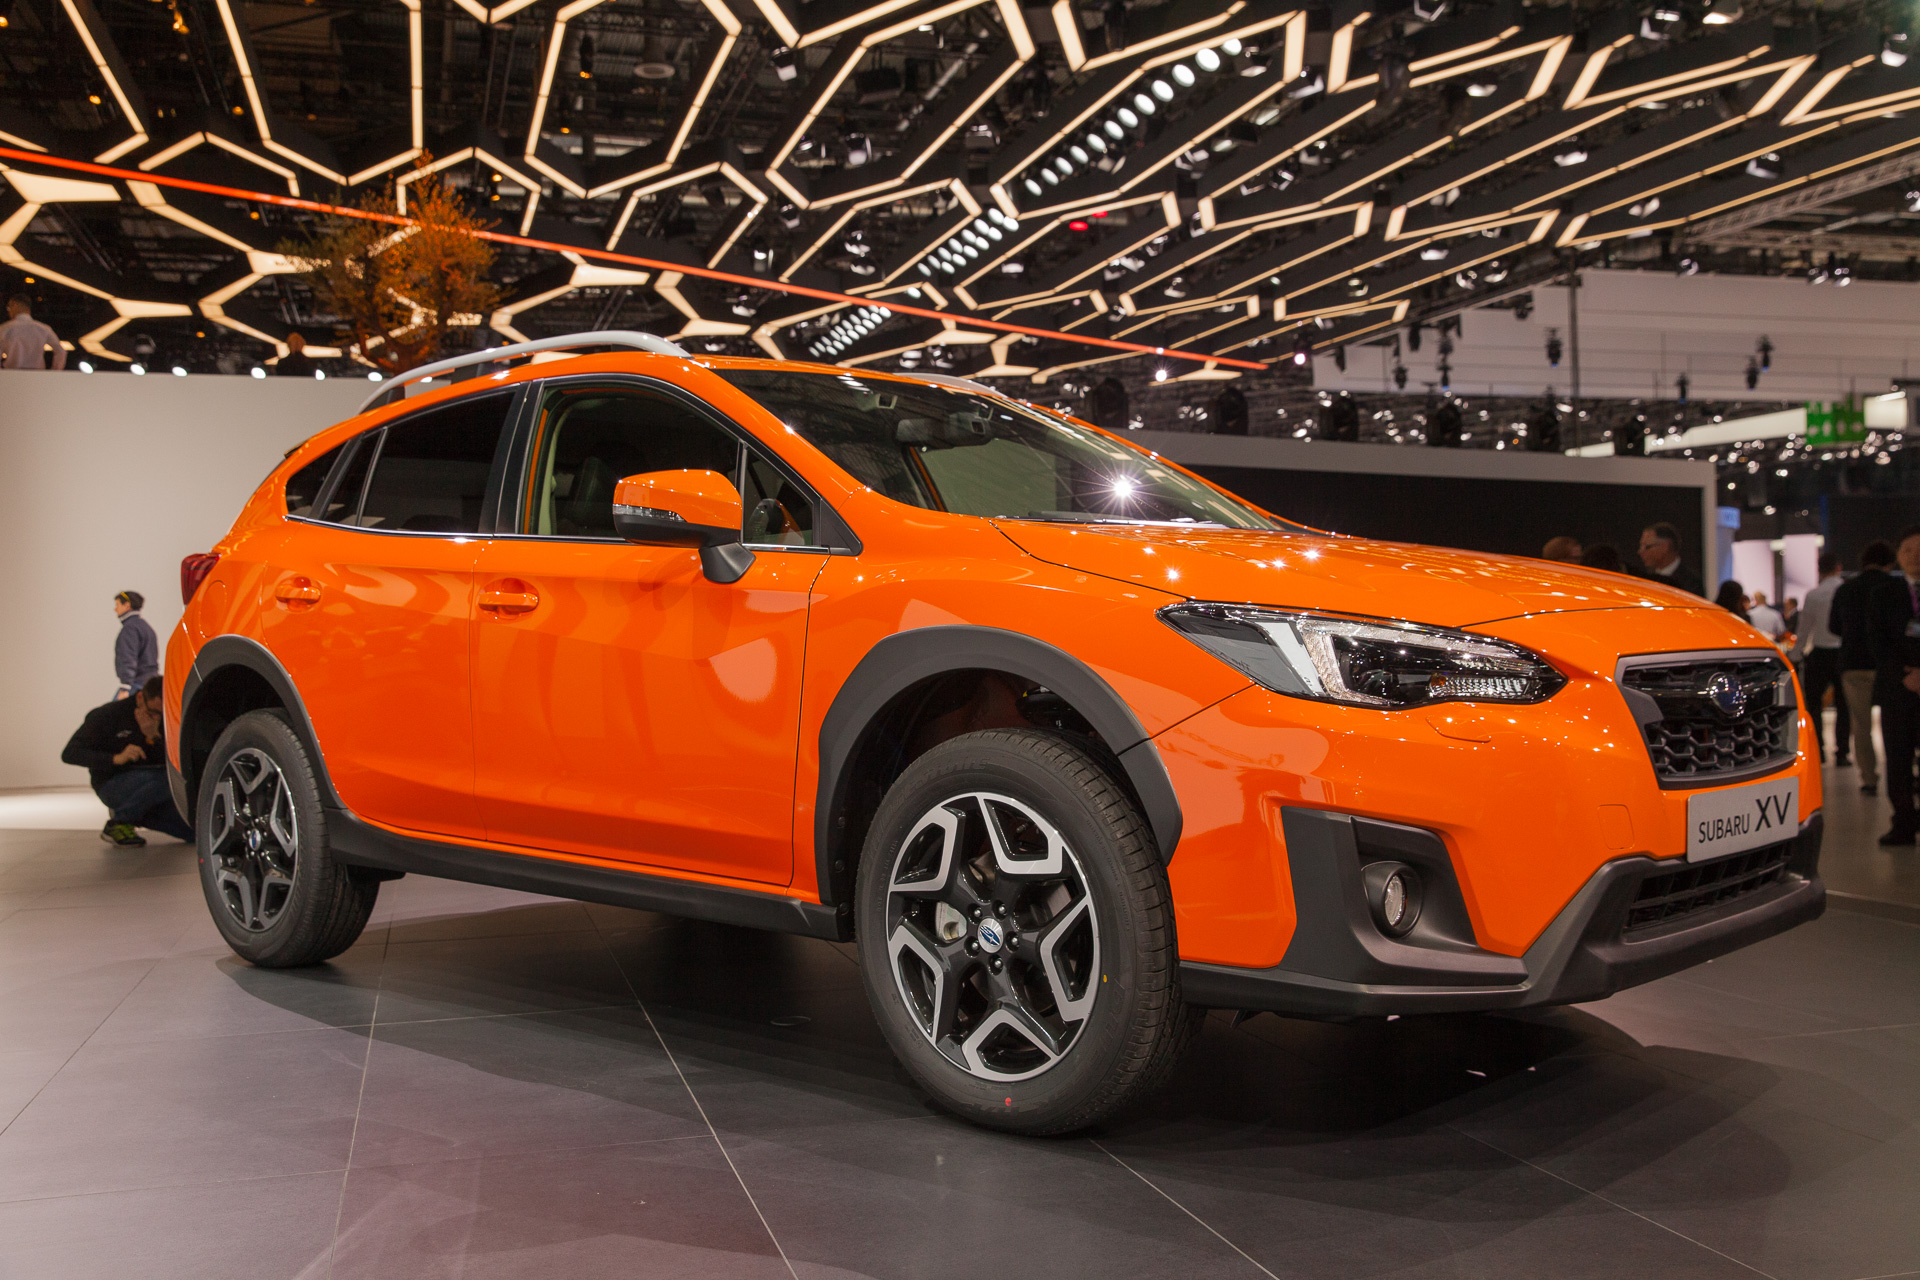 2018 subaru crosstrek priced from 22 710 kayak not included. Black Bedroom Furniture Sets. Home Design Ideas